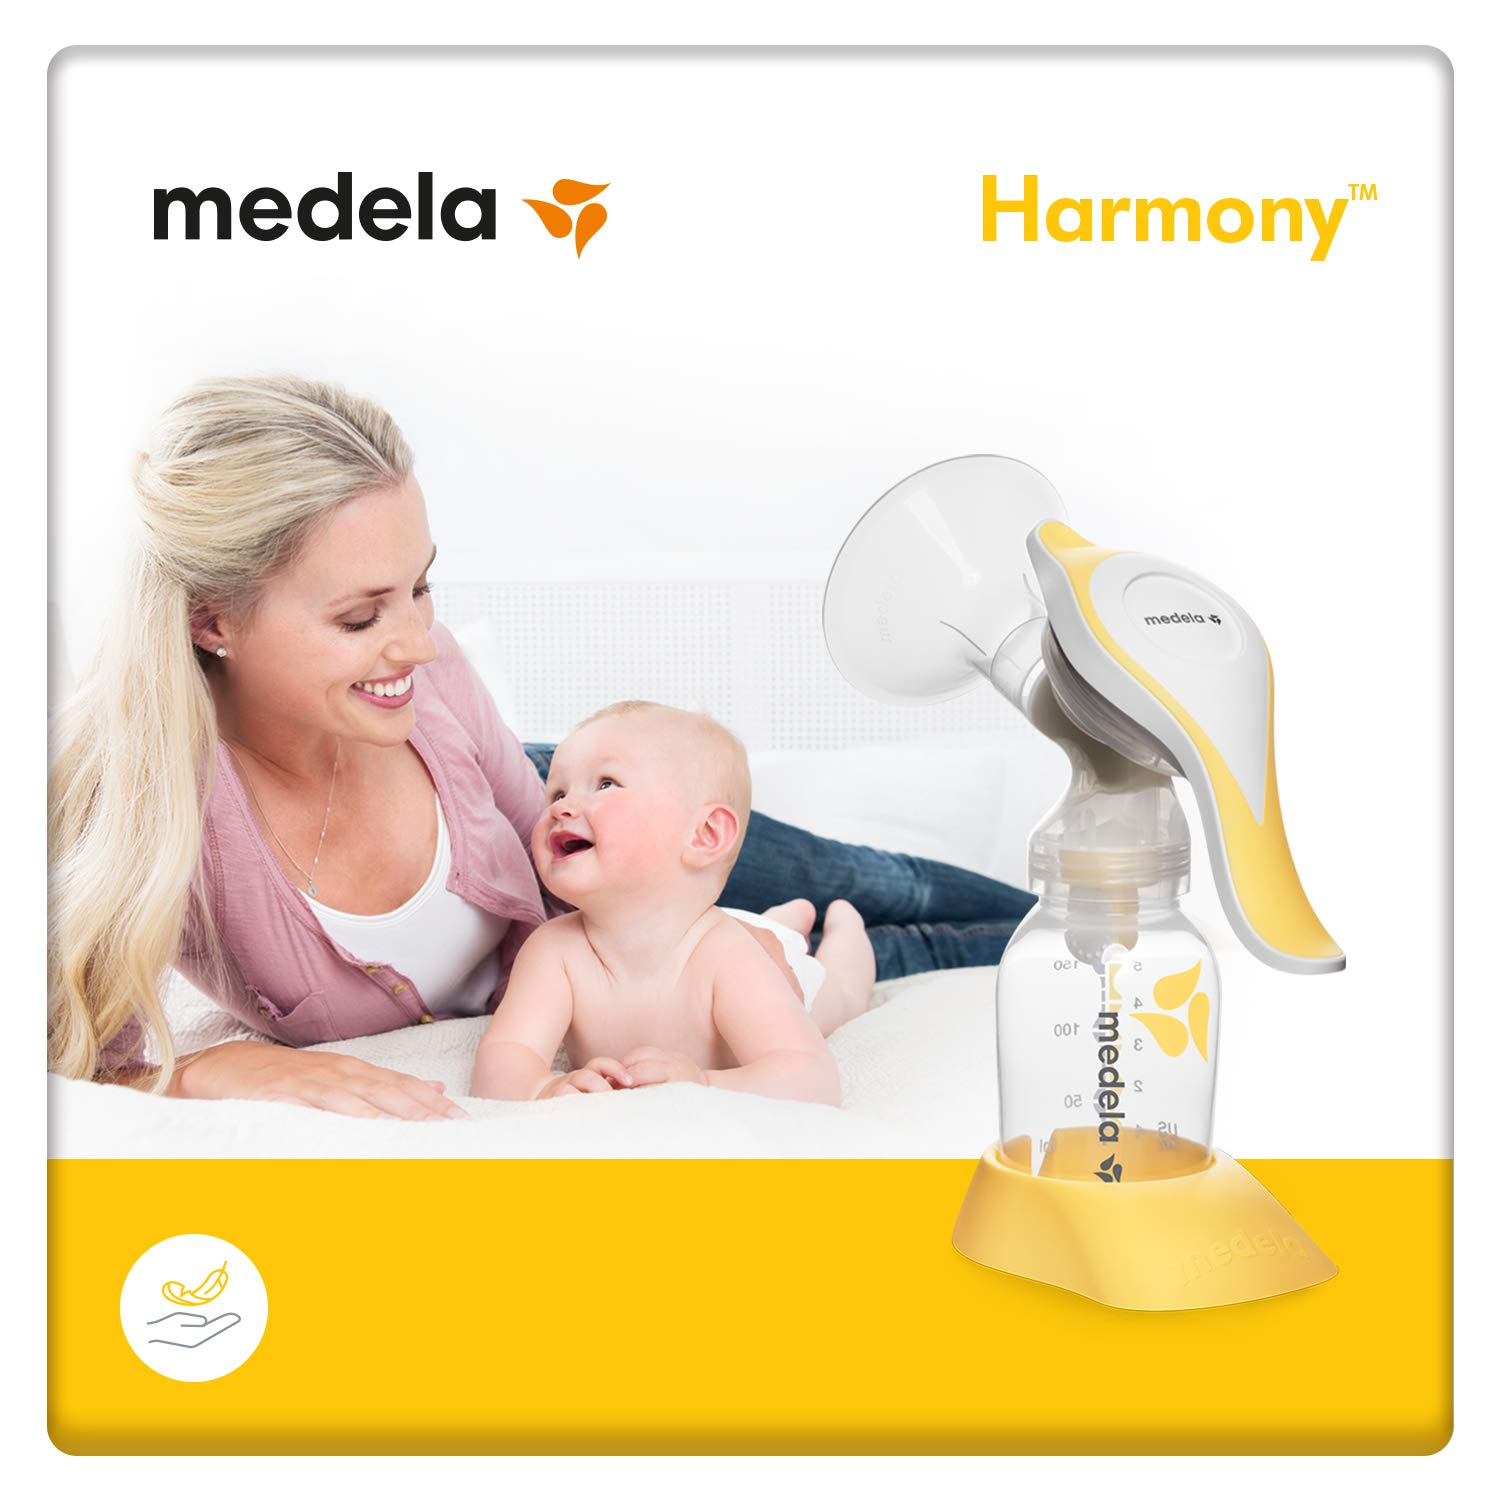 Medela Harmony Breast Pump Single Manual Hand Breast Pump Buy